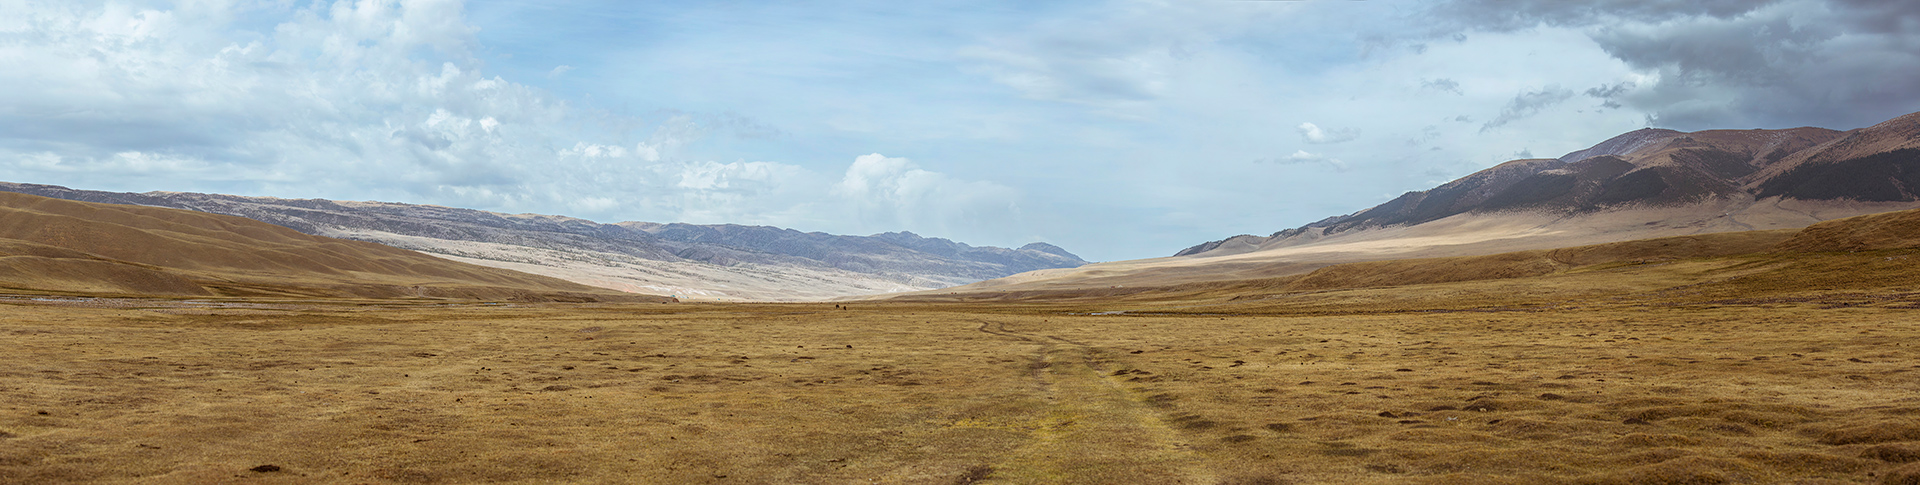 Assy plateau, Eastern Kazakhstan, steppe, nature, Central Asia